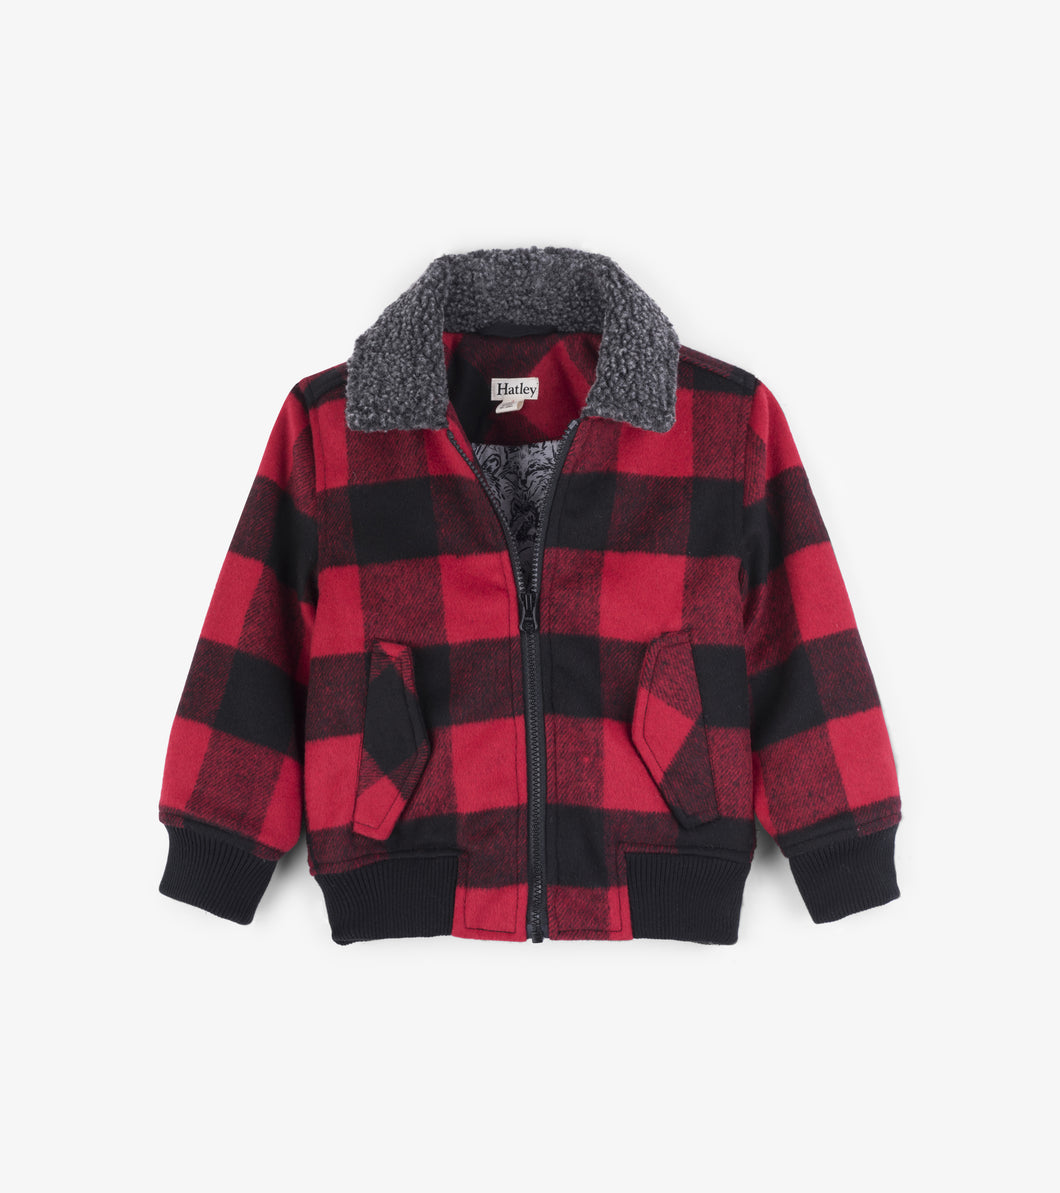 Buffalo Plaid Bomber Jacket